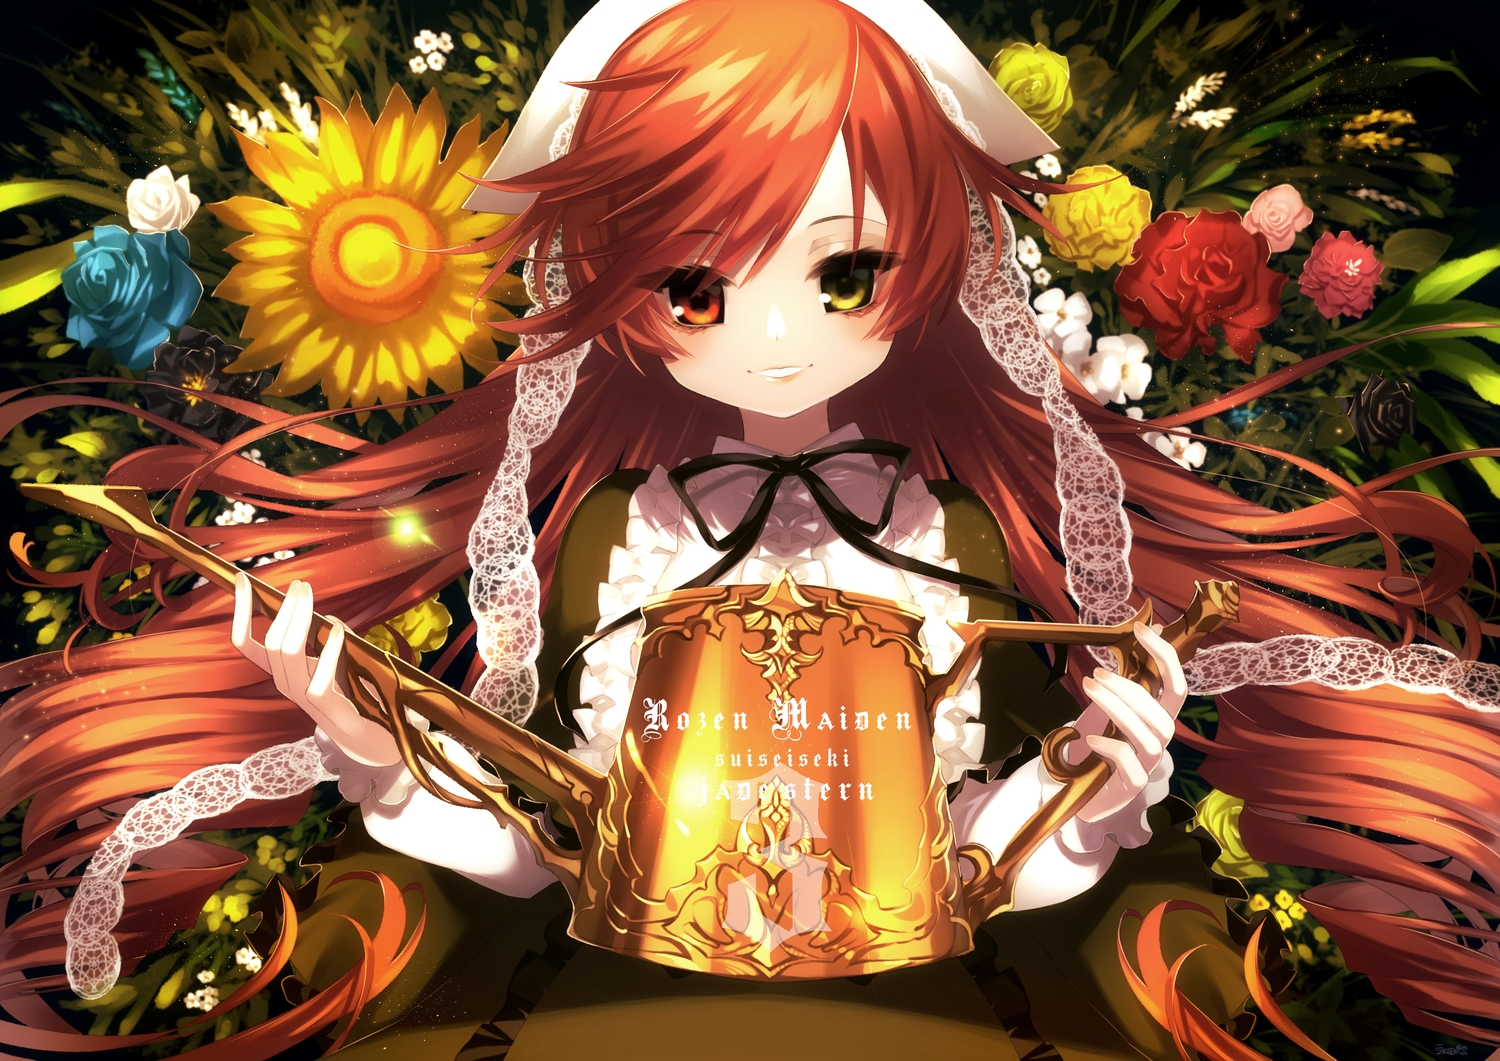 bicolored_eyes brown_hair flowers headdress lolita_fashion long_hair nagata_shuu rose rozen_maiden suiseiseki sunflower